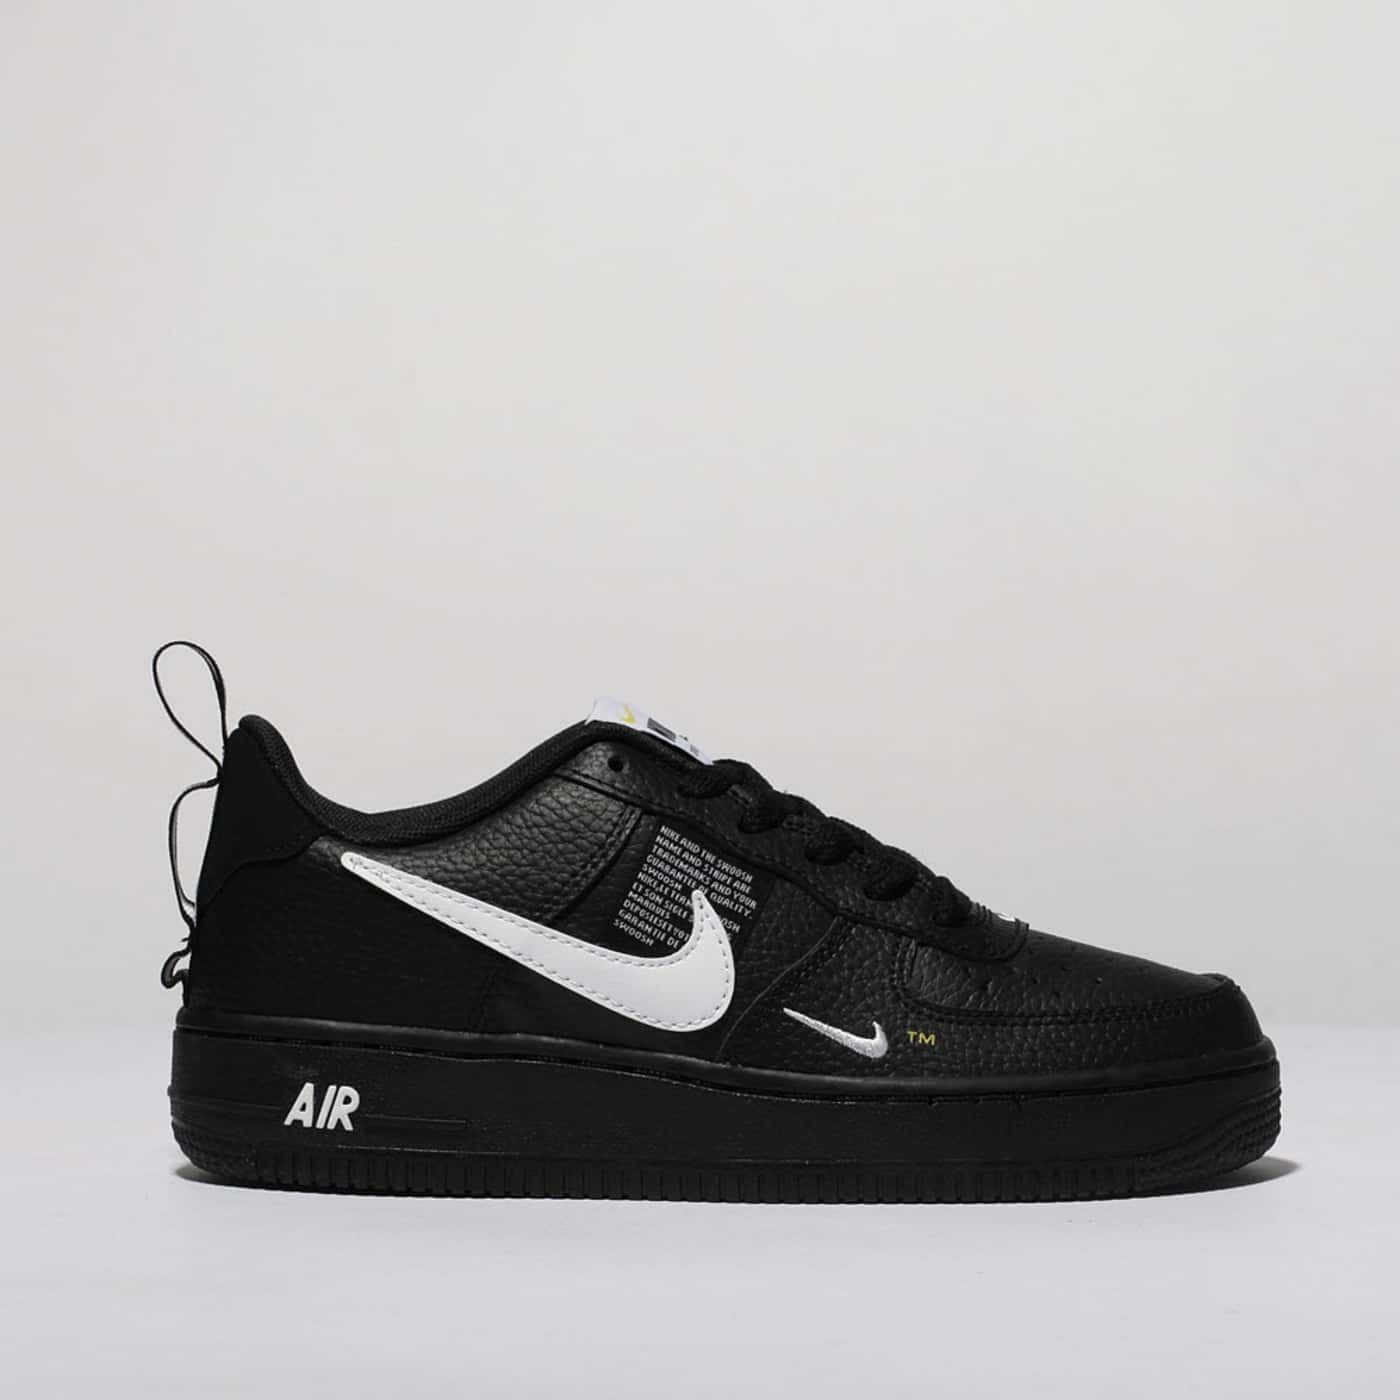 quality design ee097 813fa Kids Unisex black  white nike air force 1 lv8 utility trainers  schuh